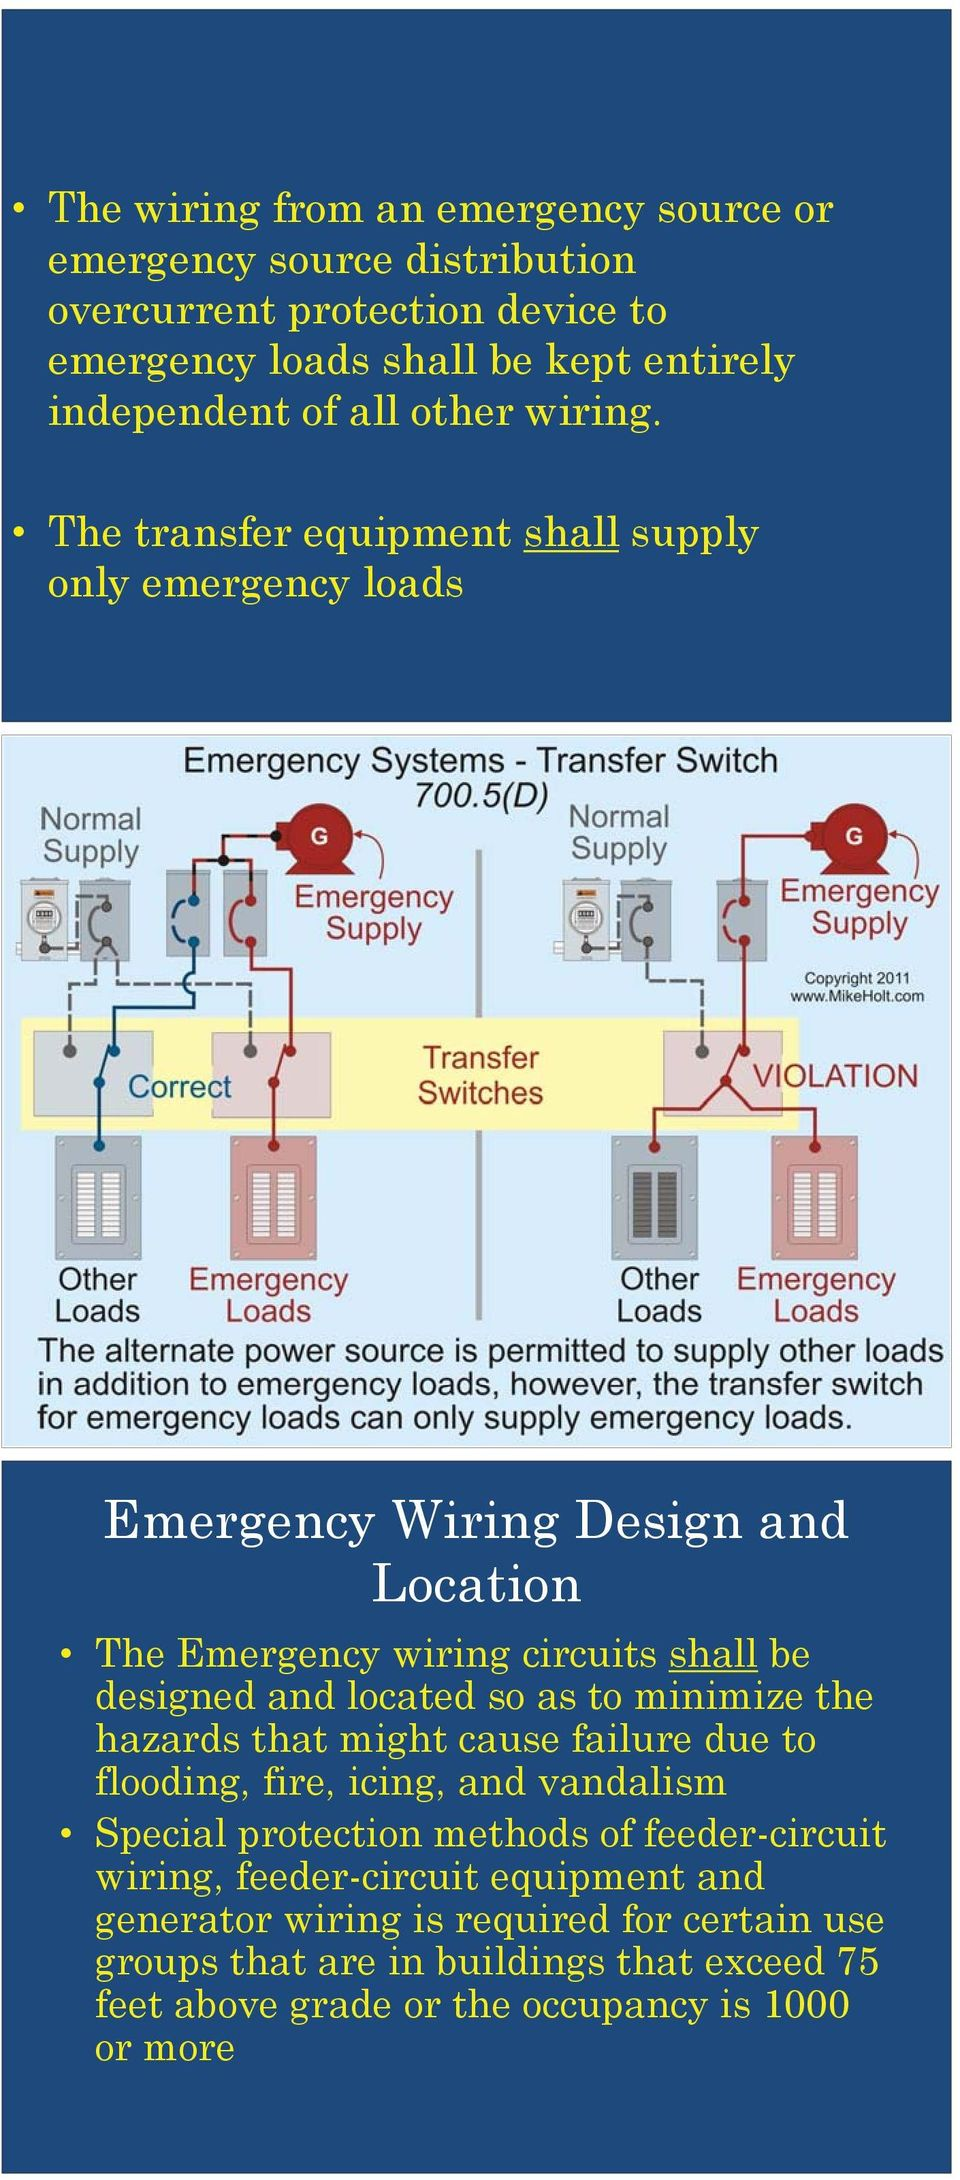 The transfer equipment shall supply only emergency loads Emergency Wiring Design and Location The Emergency wiring circuits shall be designed and located so as